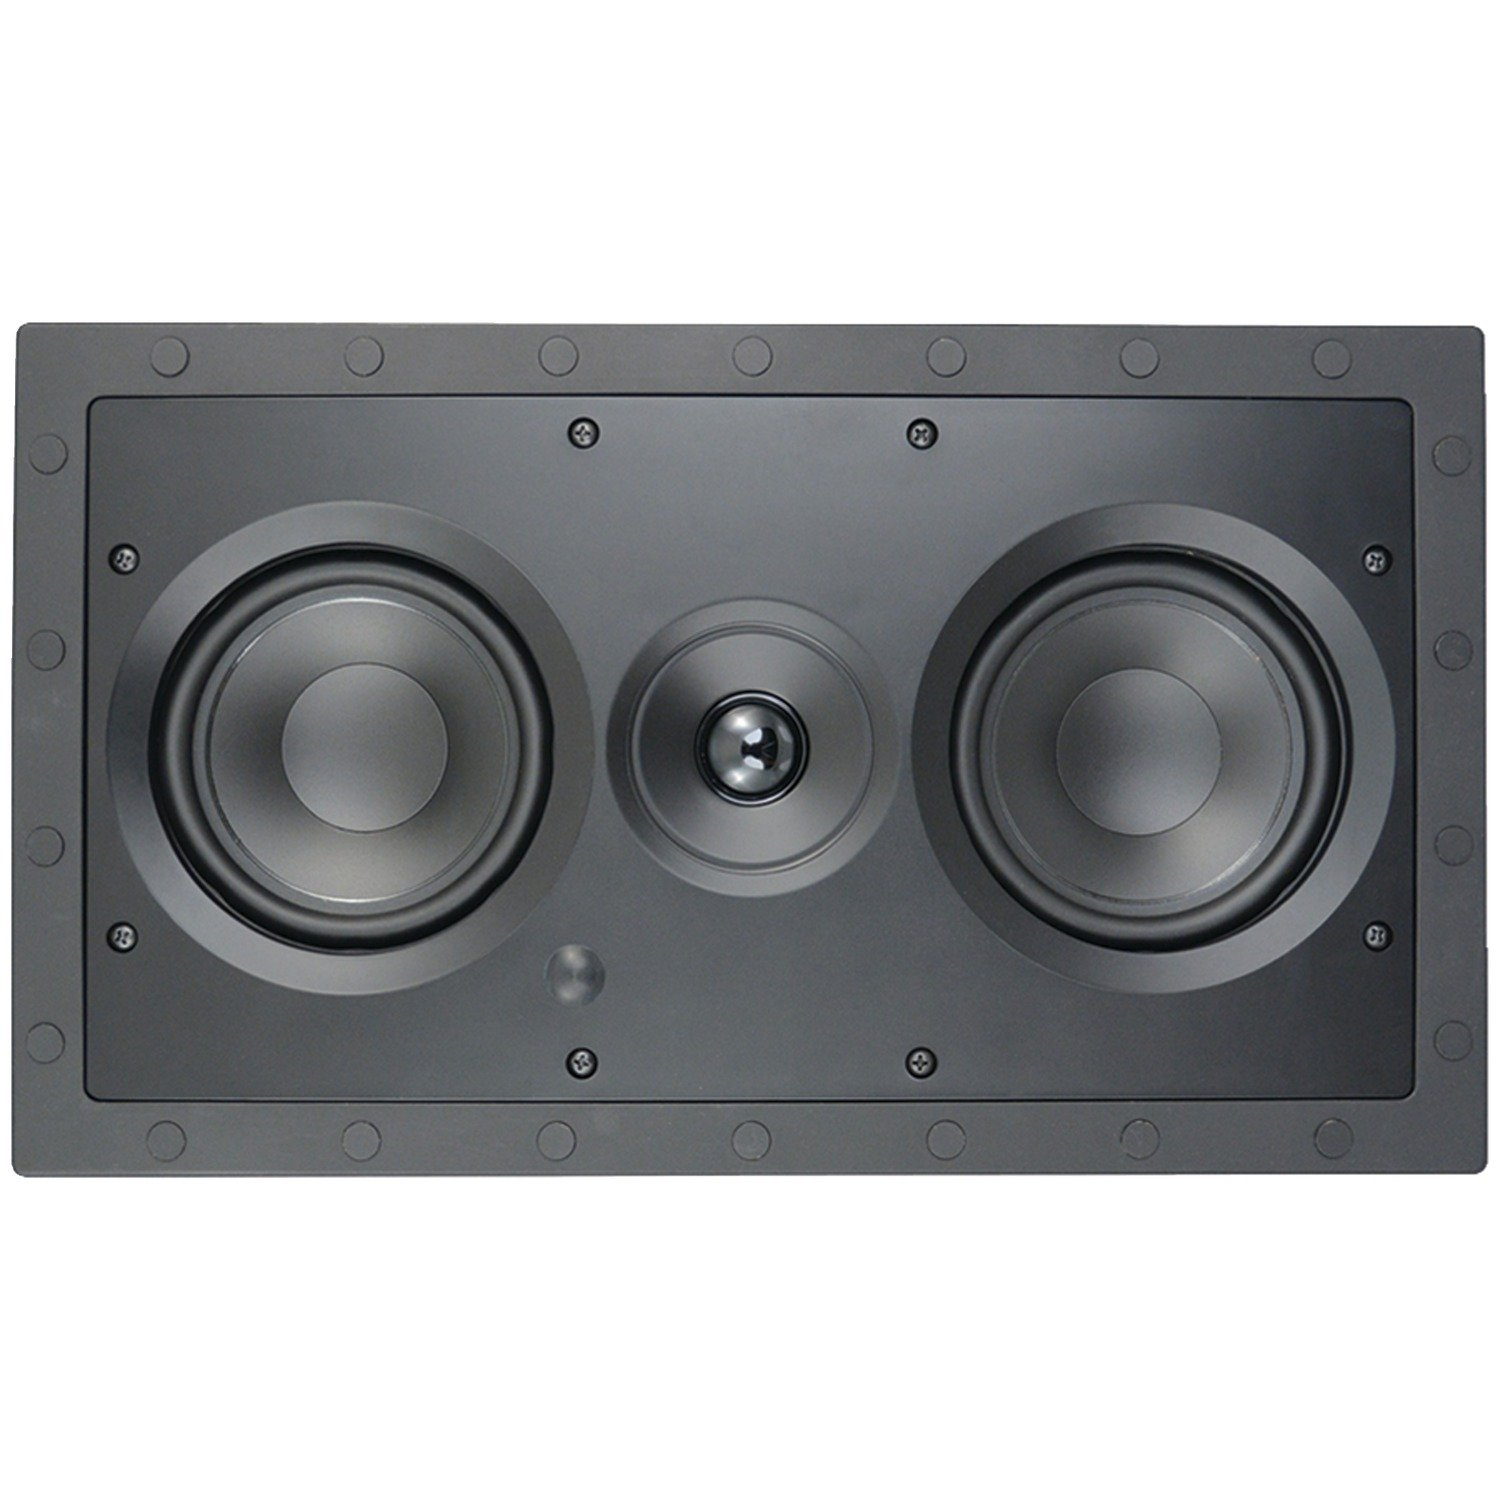 ARCHITECH SE-525LCRSF 5.25 Premium Series 2-Way Frameless LCR in-Wall Speaker